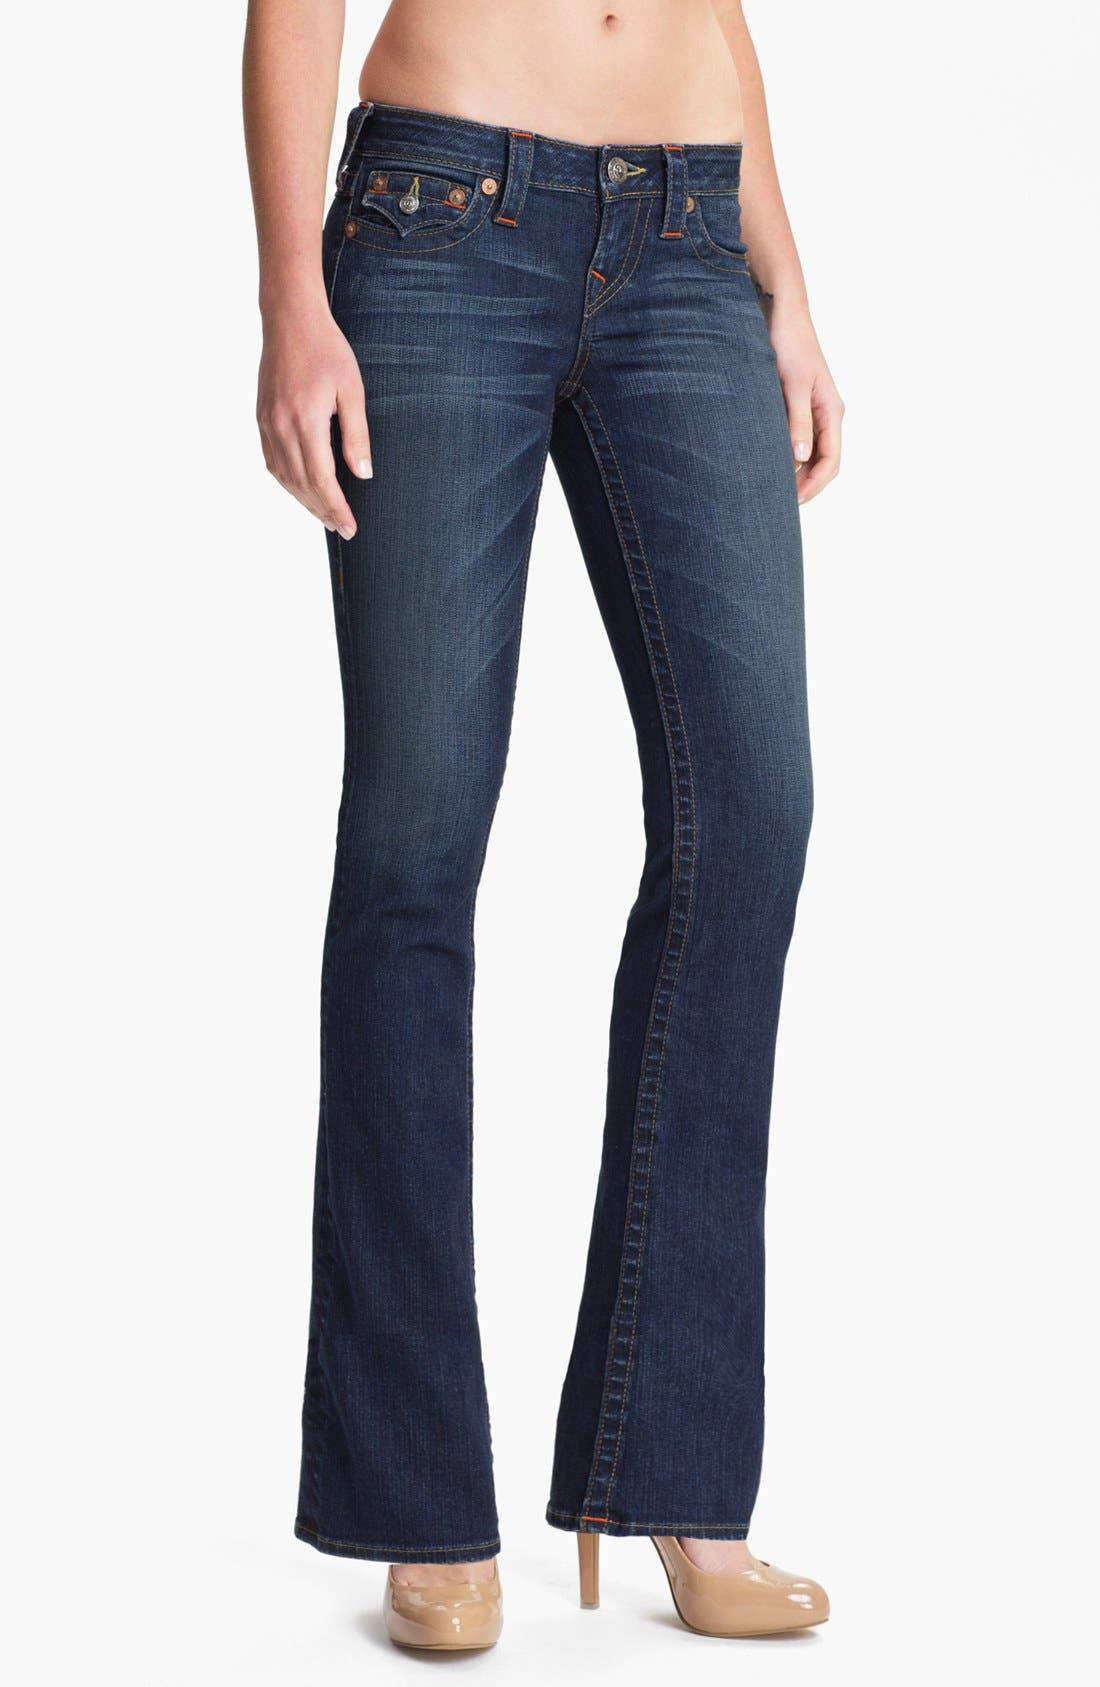 Alternate Image 1 Selected - True Religion Brand Jeans 'Becky' Bootcut Jeans (Dusty Skies) (Petite)